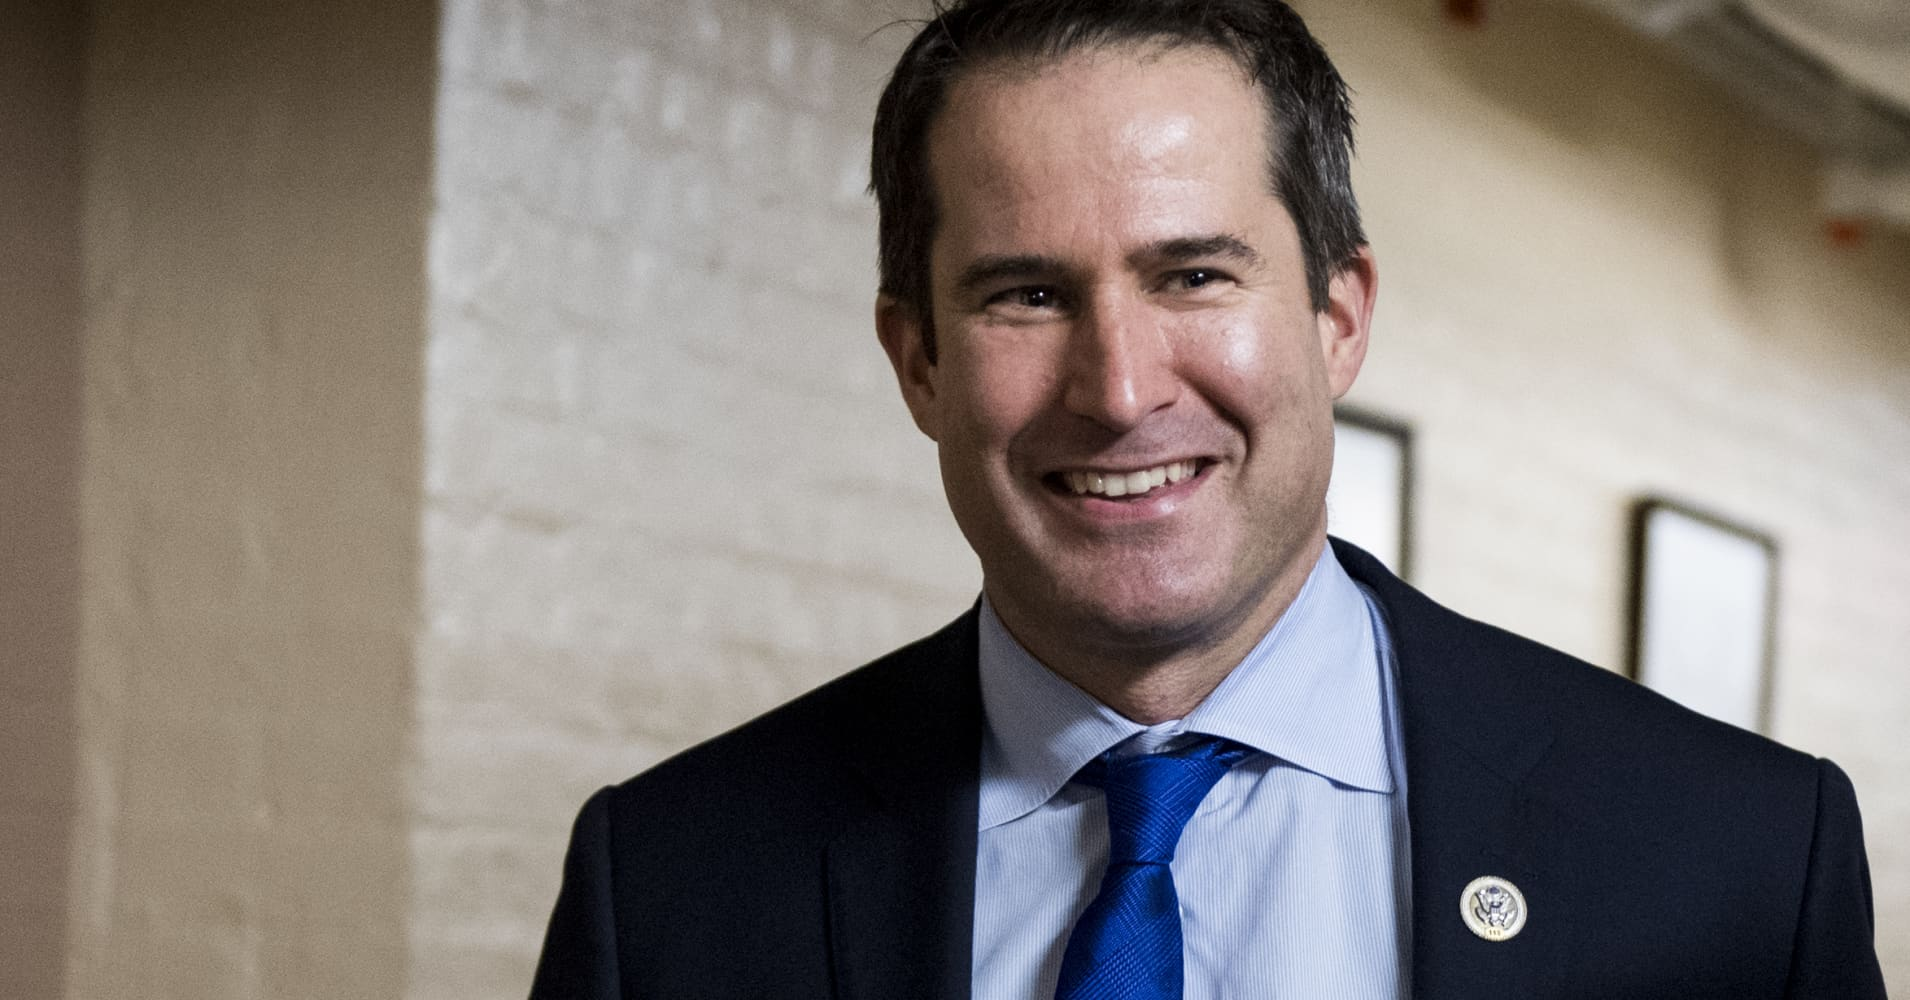 Rep. Seth Moulton is latest Democrat to enter 2020 field